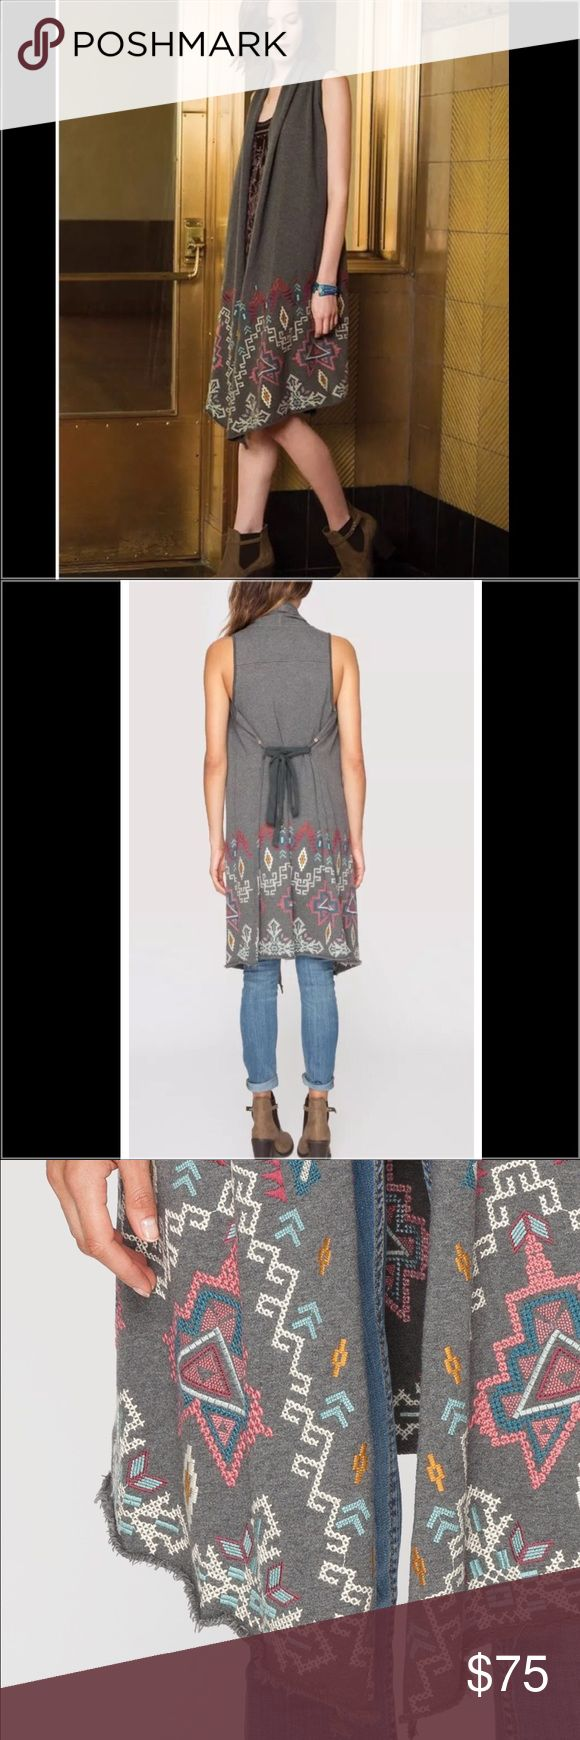 JWLA Tisha Drape Vest Navy Blue EUC. The TISHA VEST is a unique layering piece! This cotton vest features colorful Aztec-inspired embroidery along the hem, and a tie that can be worn around the waist or in the back. Layer over jeans and a tee to add boho flair to your casual look! * The one I am selling is navy blue… The die is slightly inconsistent, appears to be somewhat Sunwashed, but I purchased it like that, and does not distract from the beauty of the garment. - Open Front, Sleeveless…